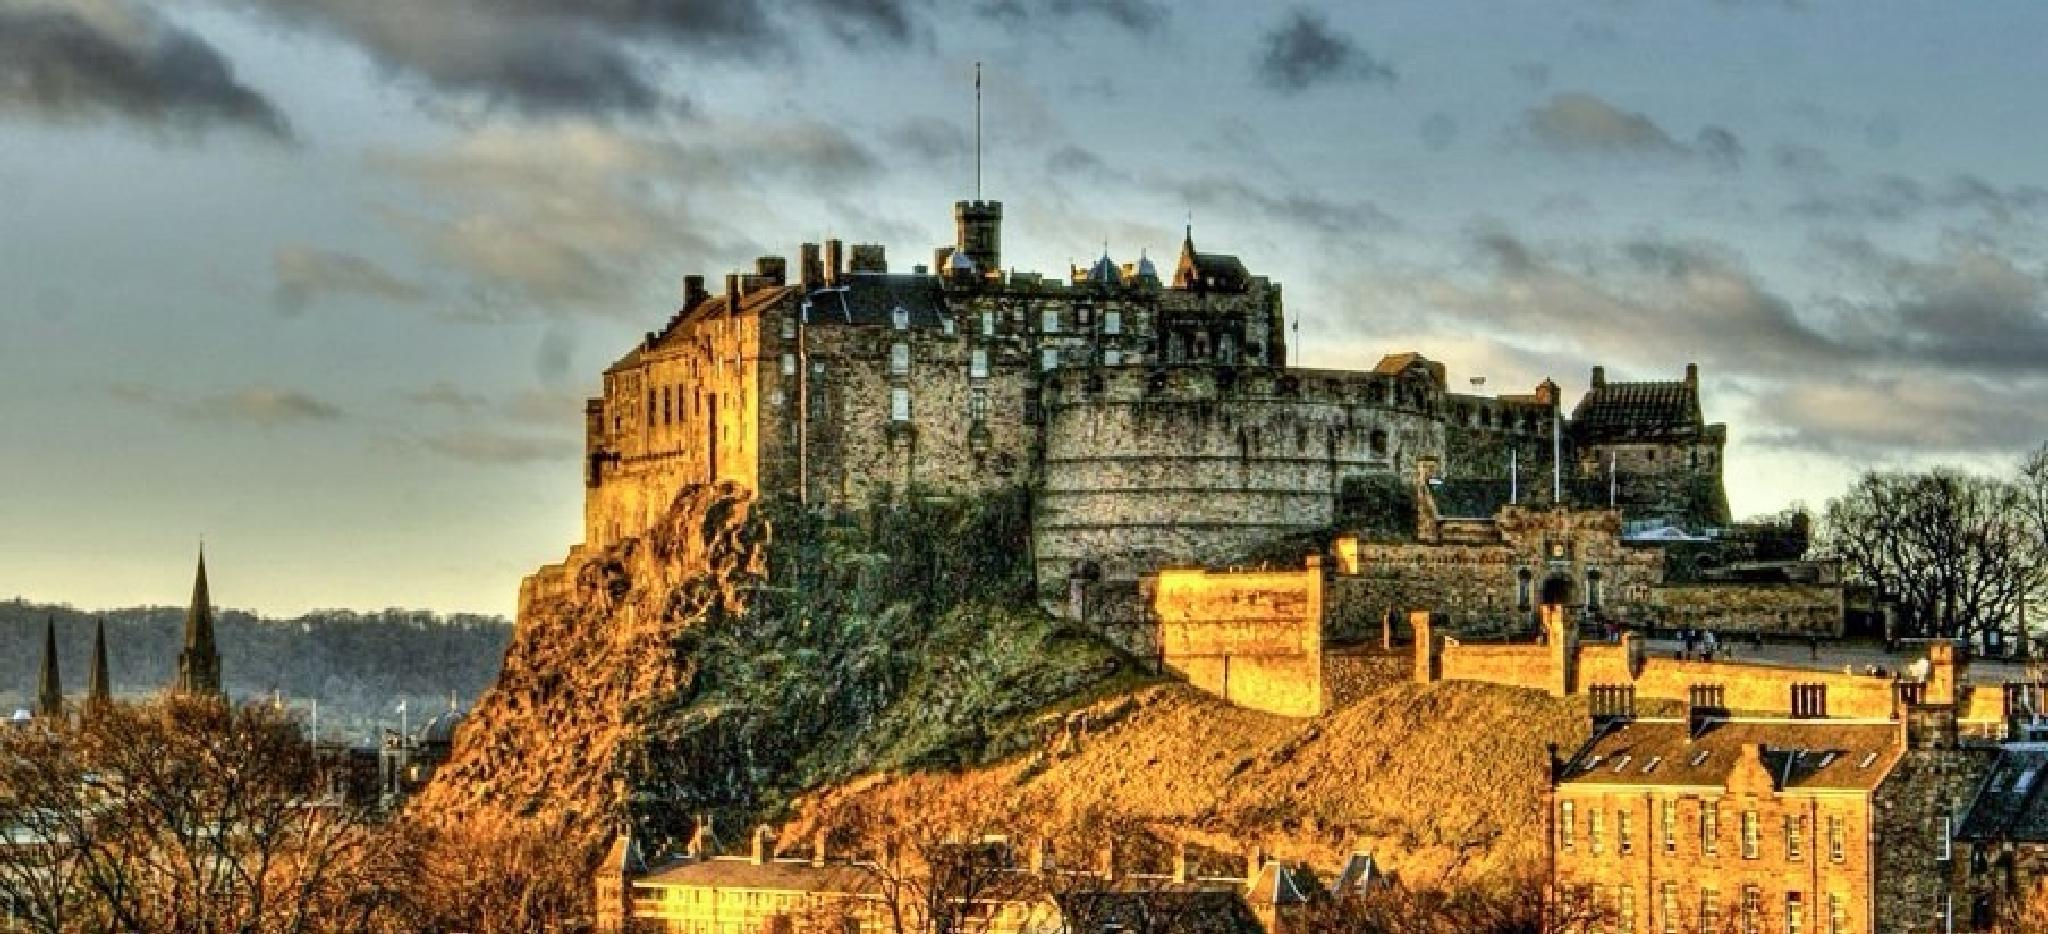 Edinburgh Castle and the setting of the sun. by Scottish Landscapes